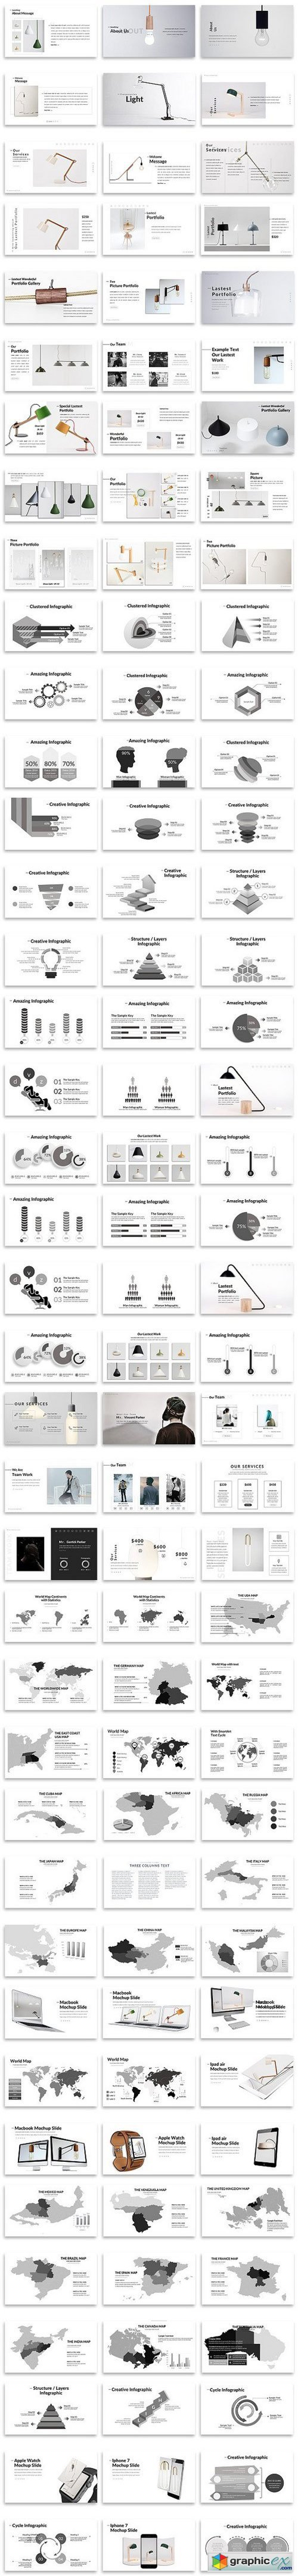 Light Creative Google Slide Template